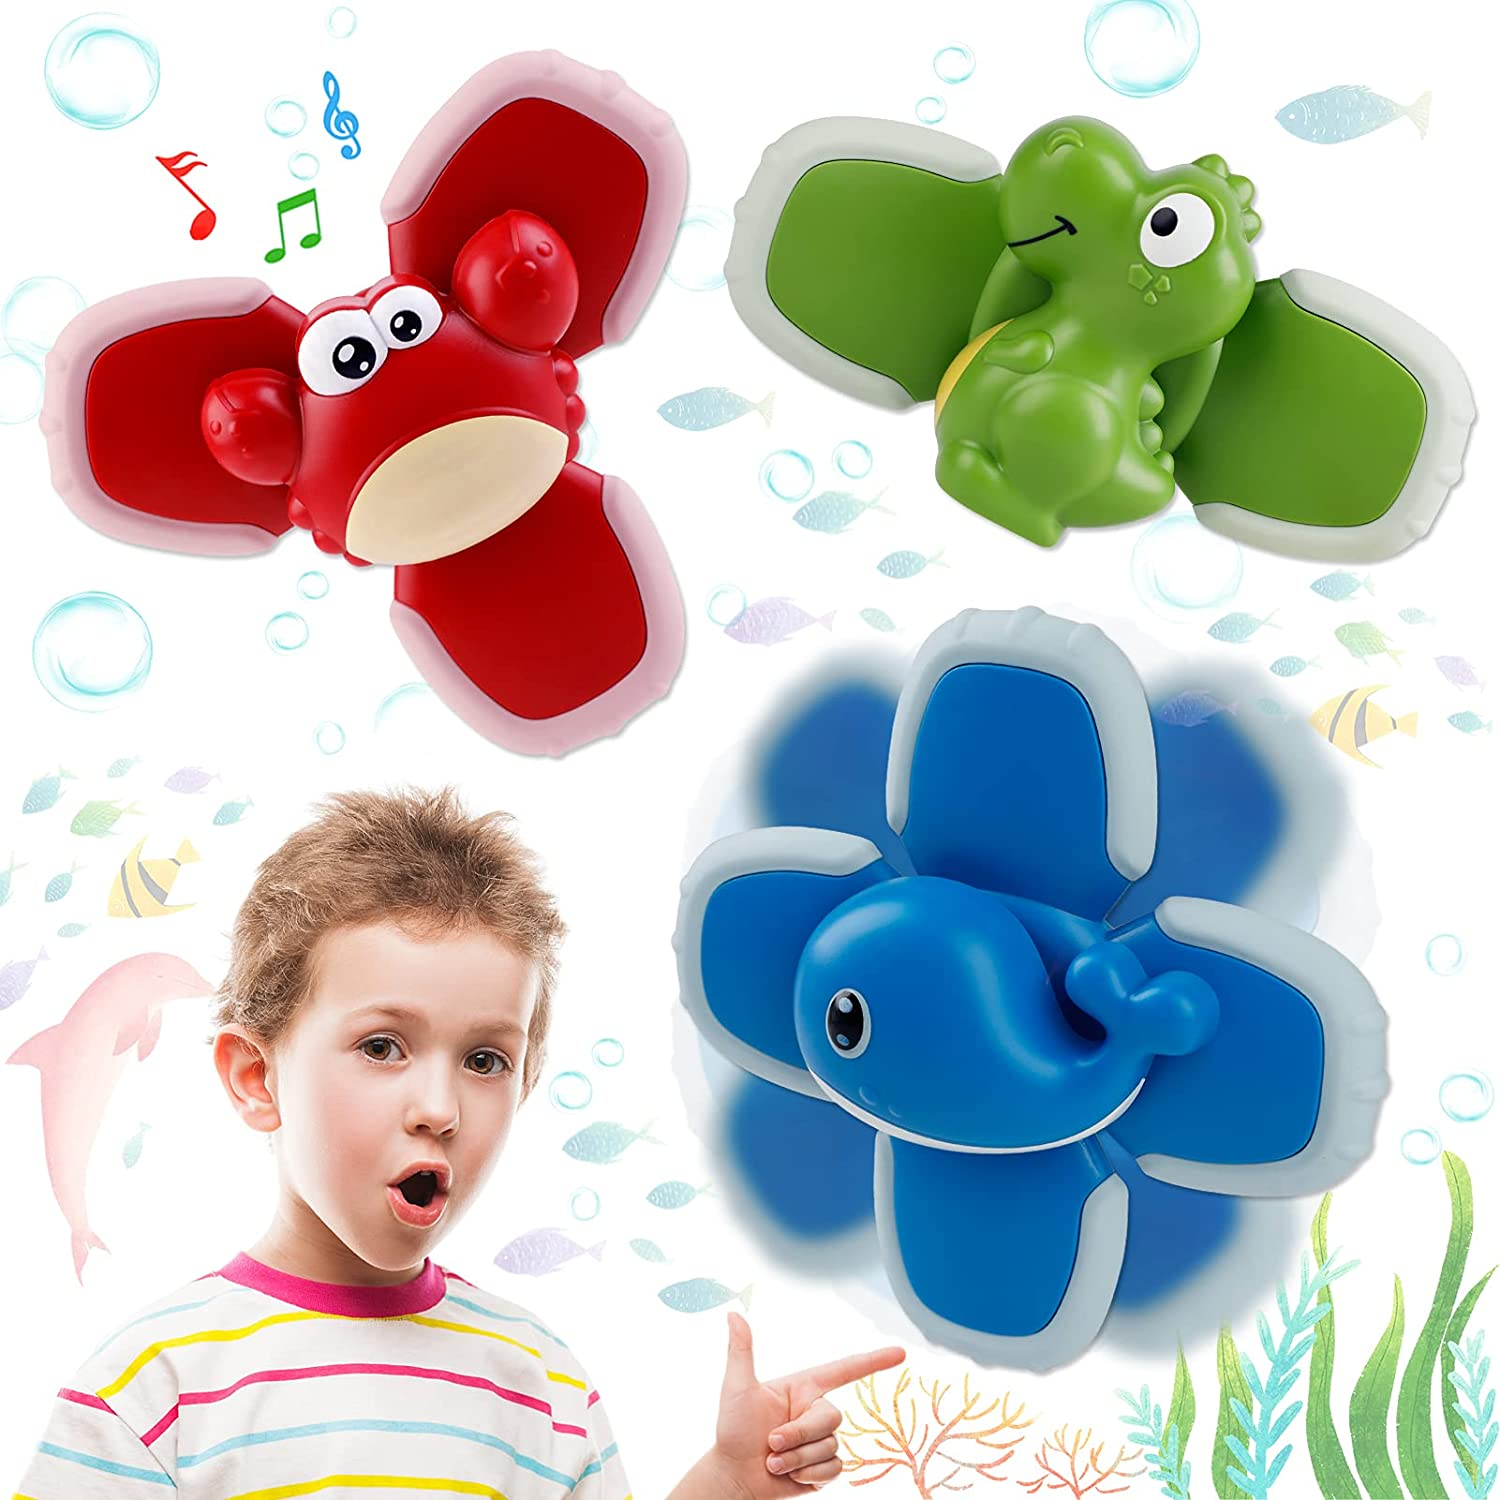 Saturfun High quality new Suction Cup Spinning Top Toy Spinner Toys Overseas parallel import regular item 3PCS Bab for